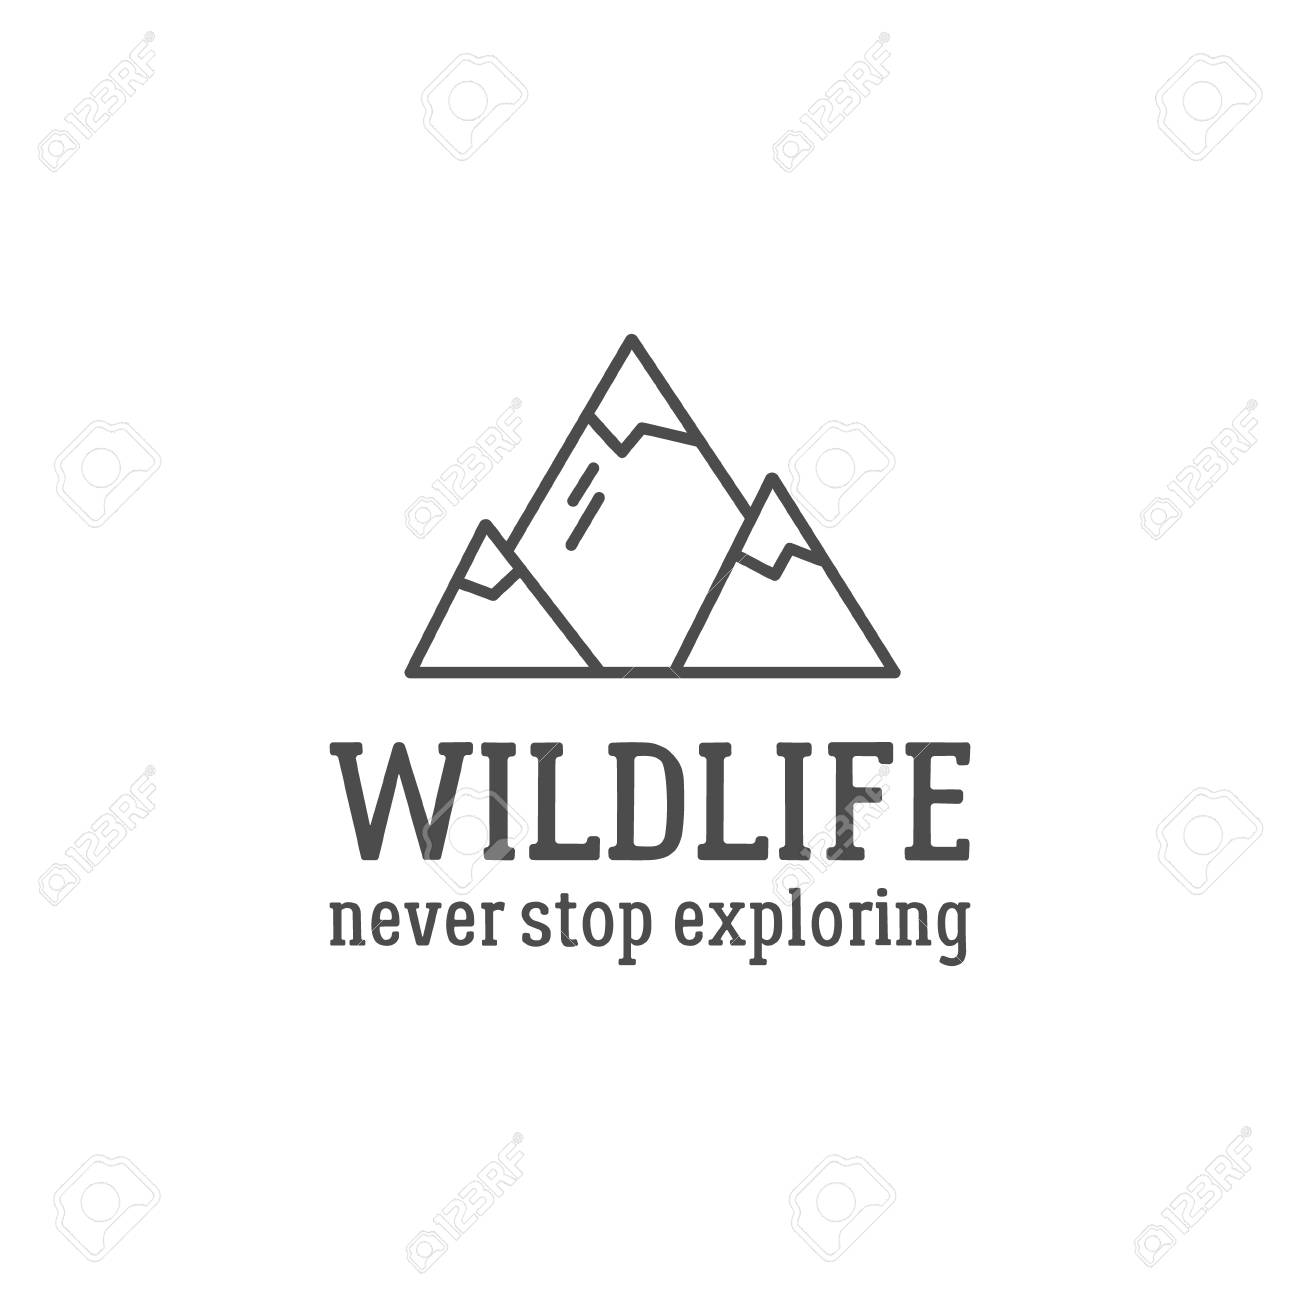 Camping logo design with typography and travel elements - mountain